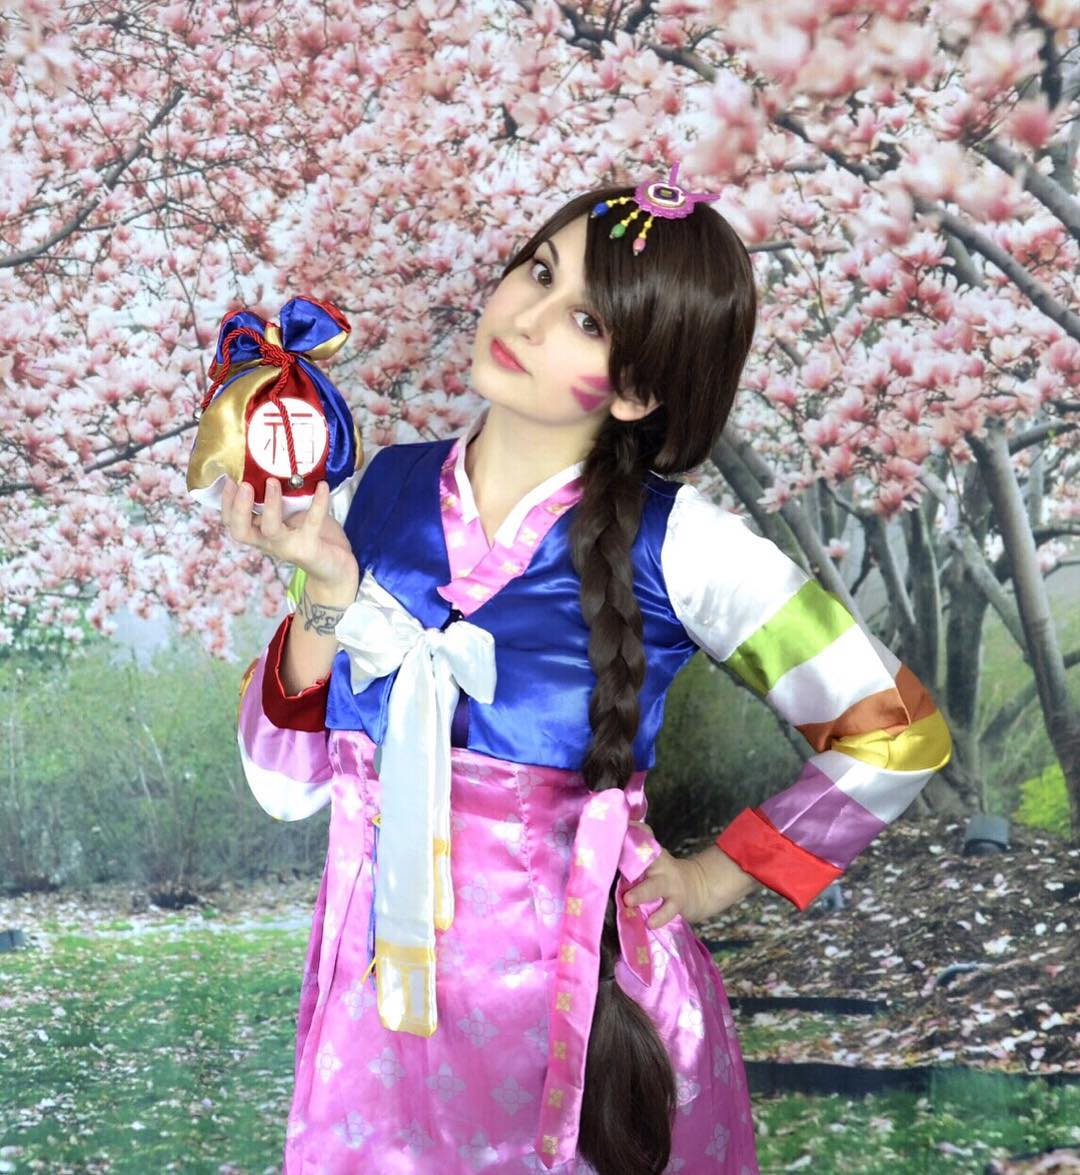 Palanquin DVA Cosplay - Overwatch - With Blue Dress - Foto